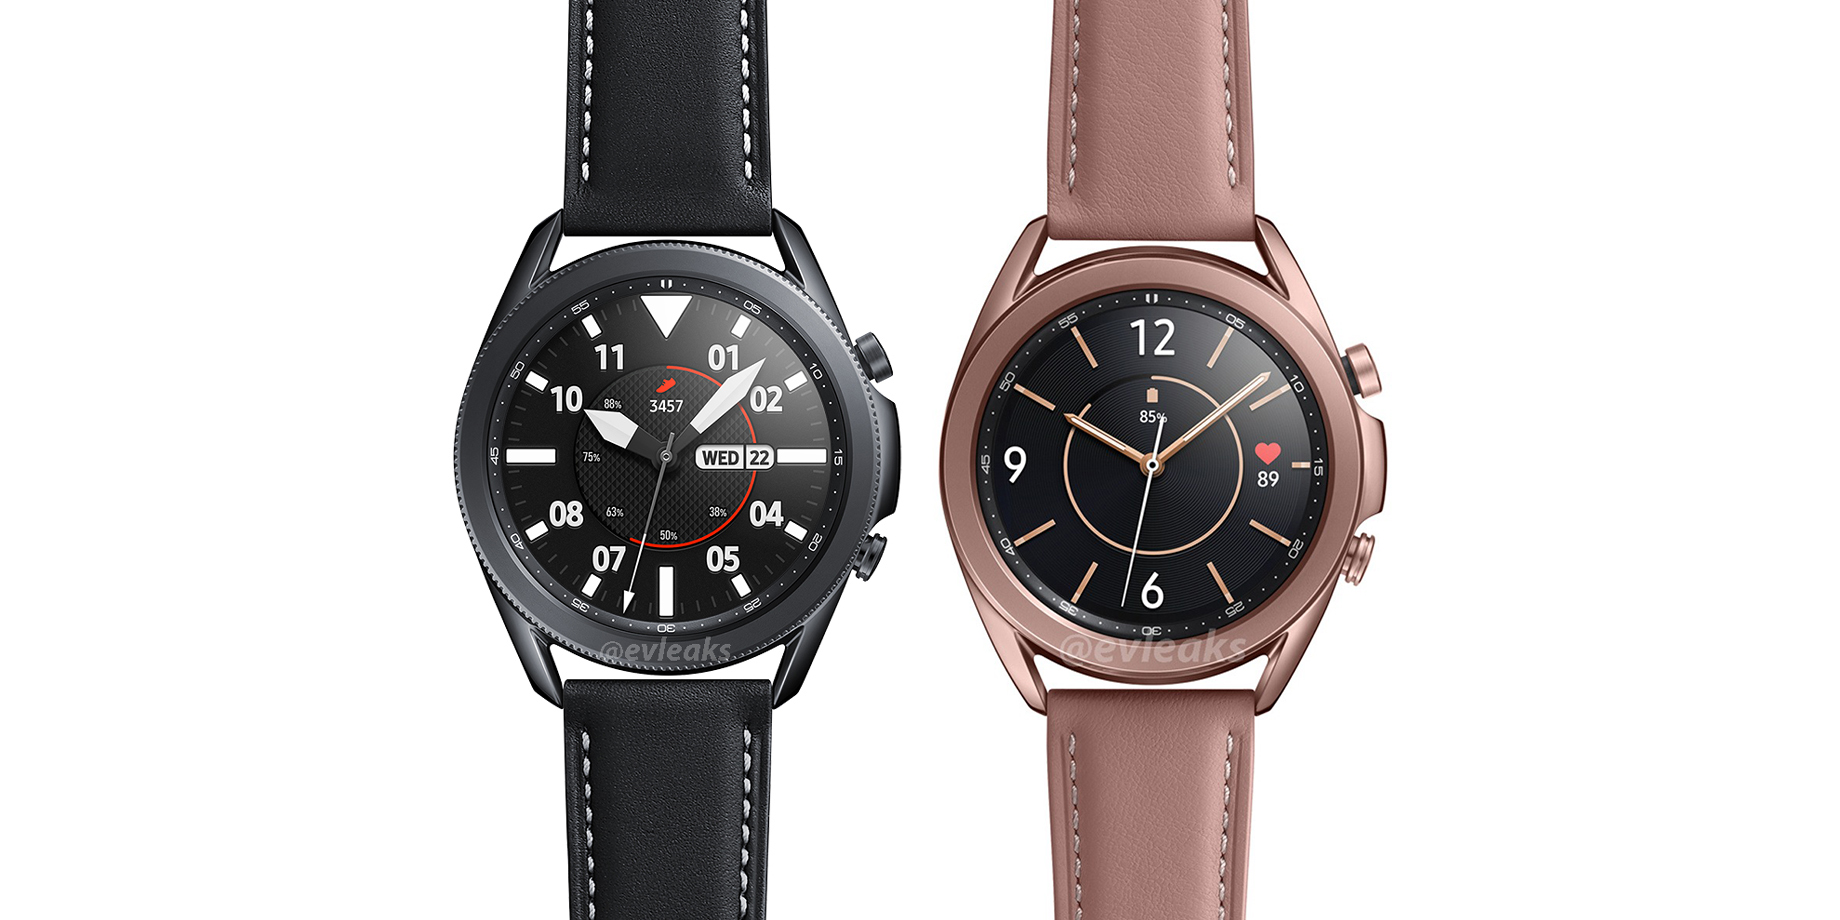 Samsung Galaxy Watch 3 gets stuck on new video